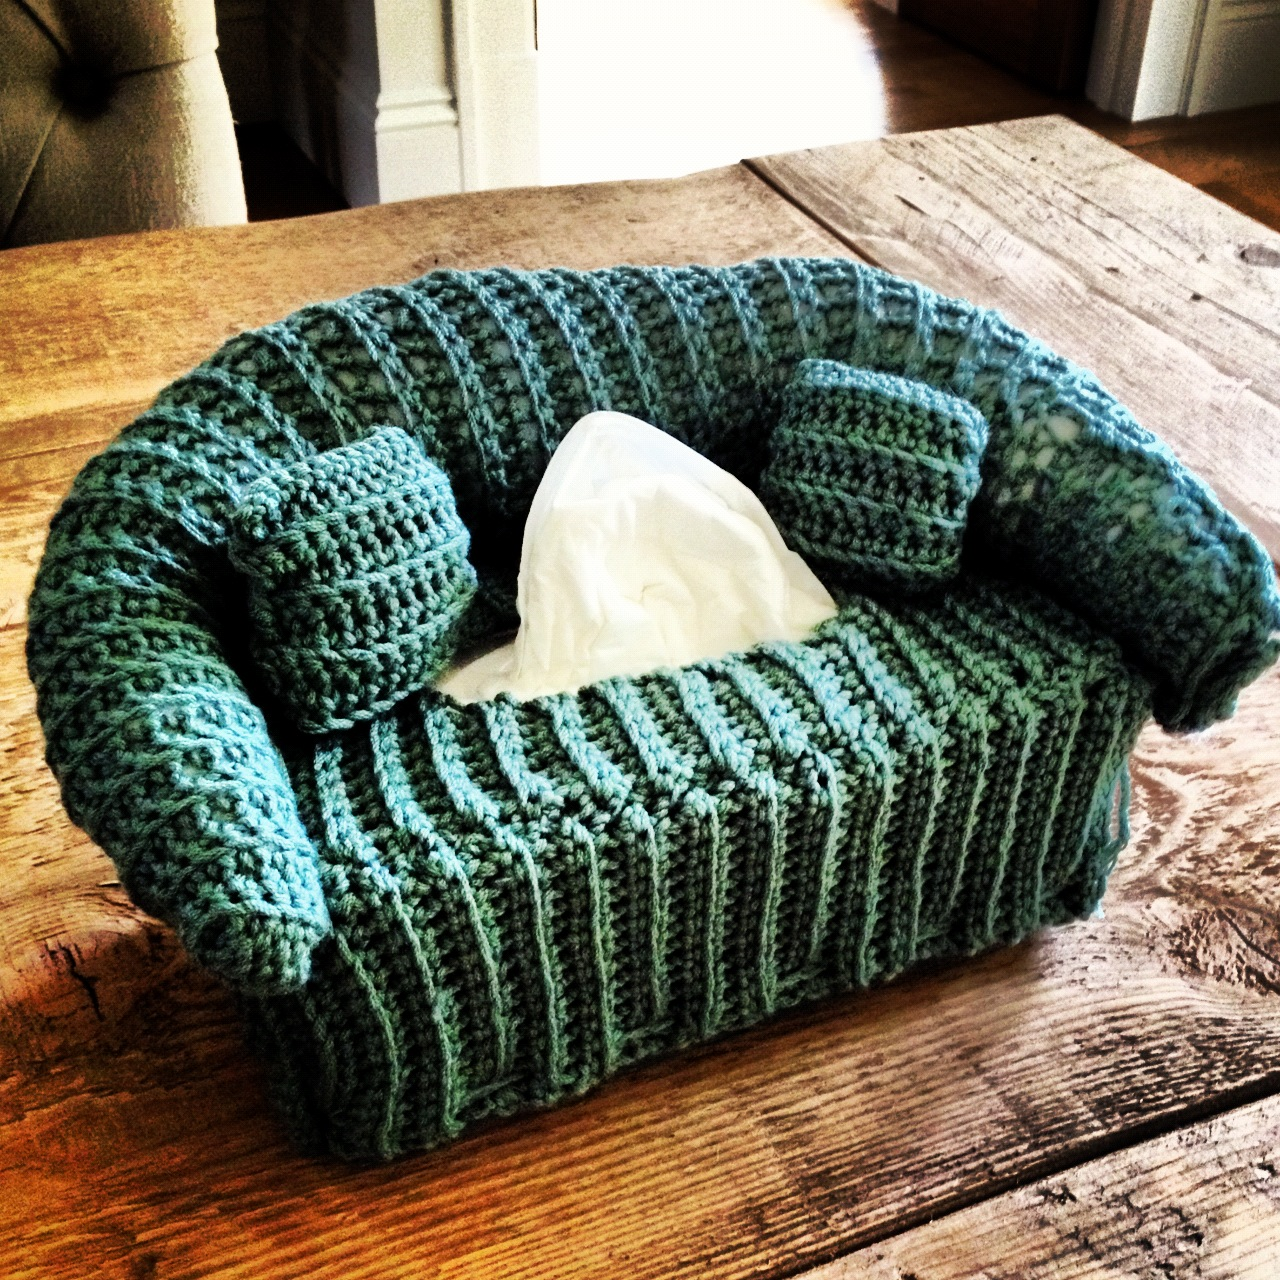 Crochet Sofa Cover Patterns Brown Klippan Tissue Box Couch Pattern Free